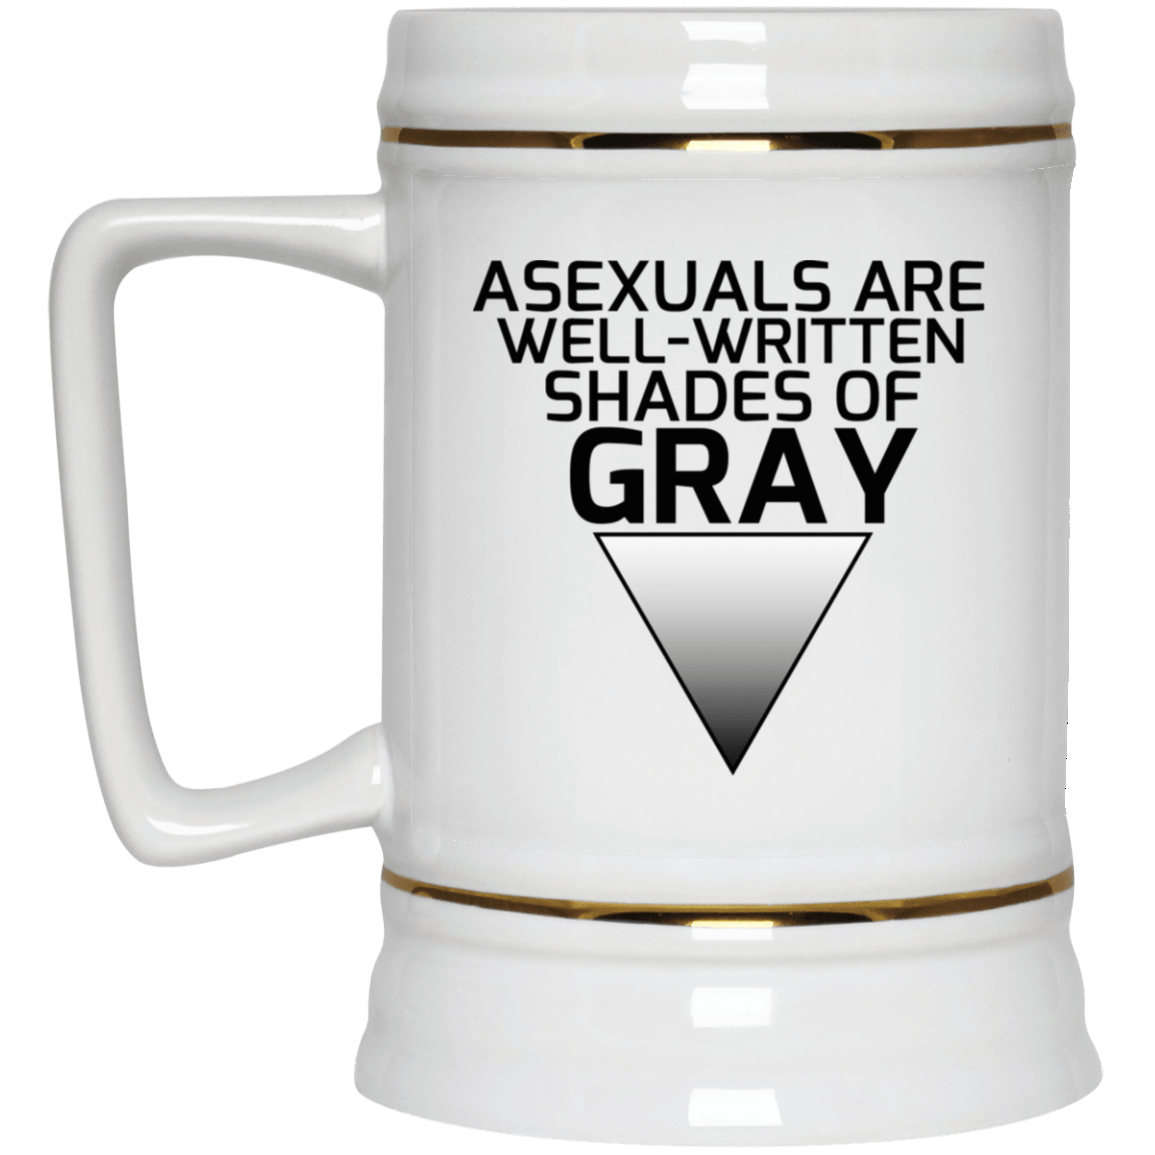 Asexuals Are Well Written Shades Of Gray White Mug 1035-9819-93051366-47459 - Tee Ript